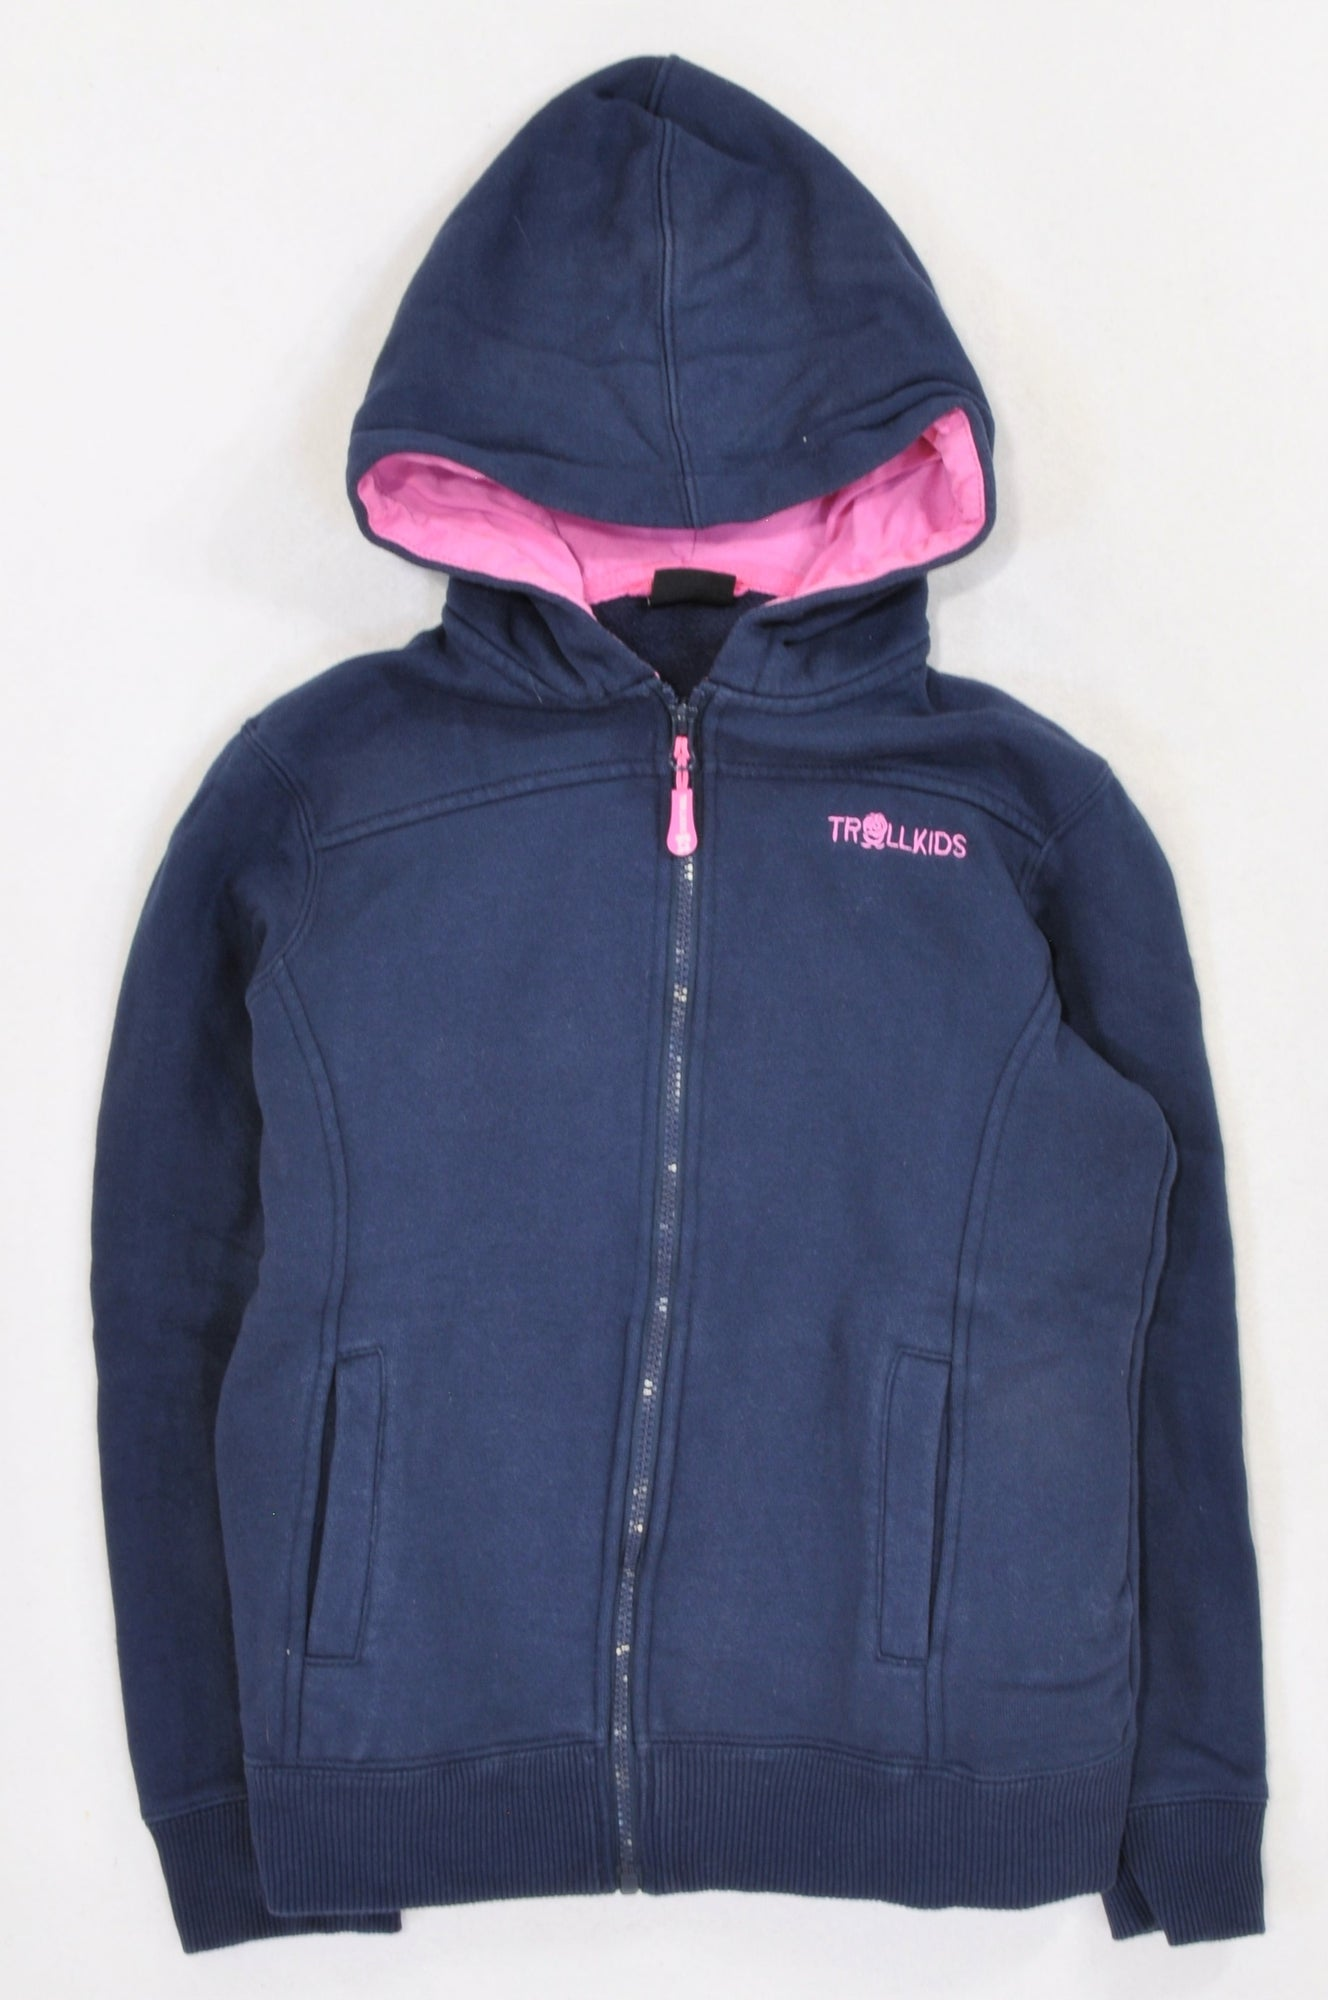 Unbranded Navy Logo Embroidered Pink Detail Hoodie Girls 8-10 years